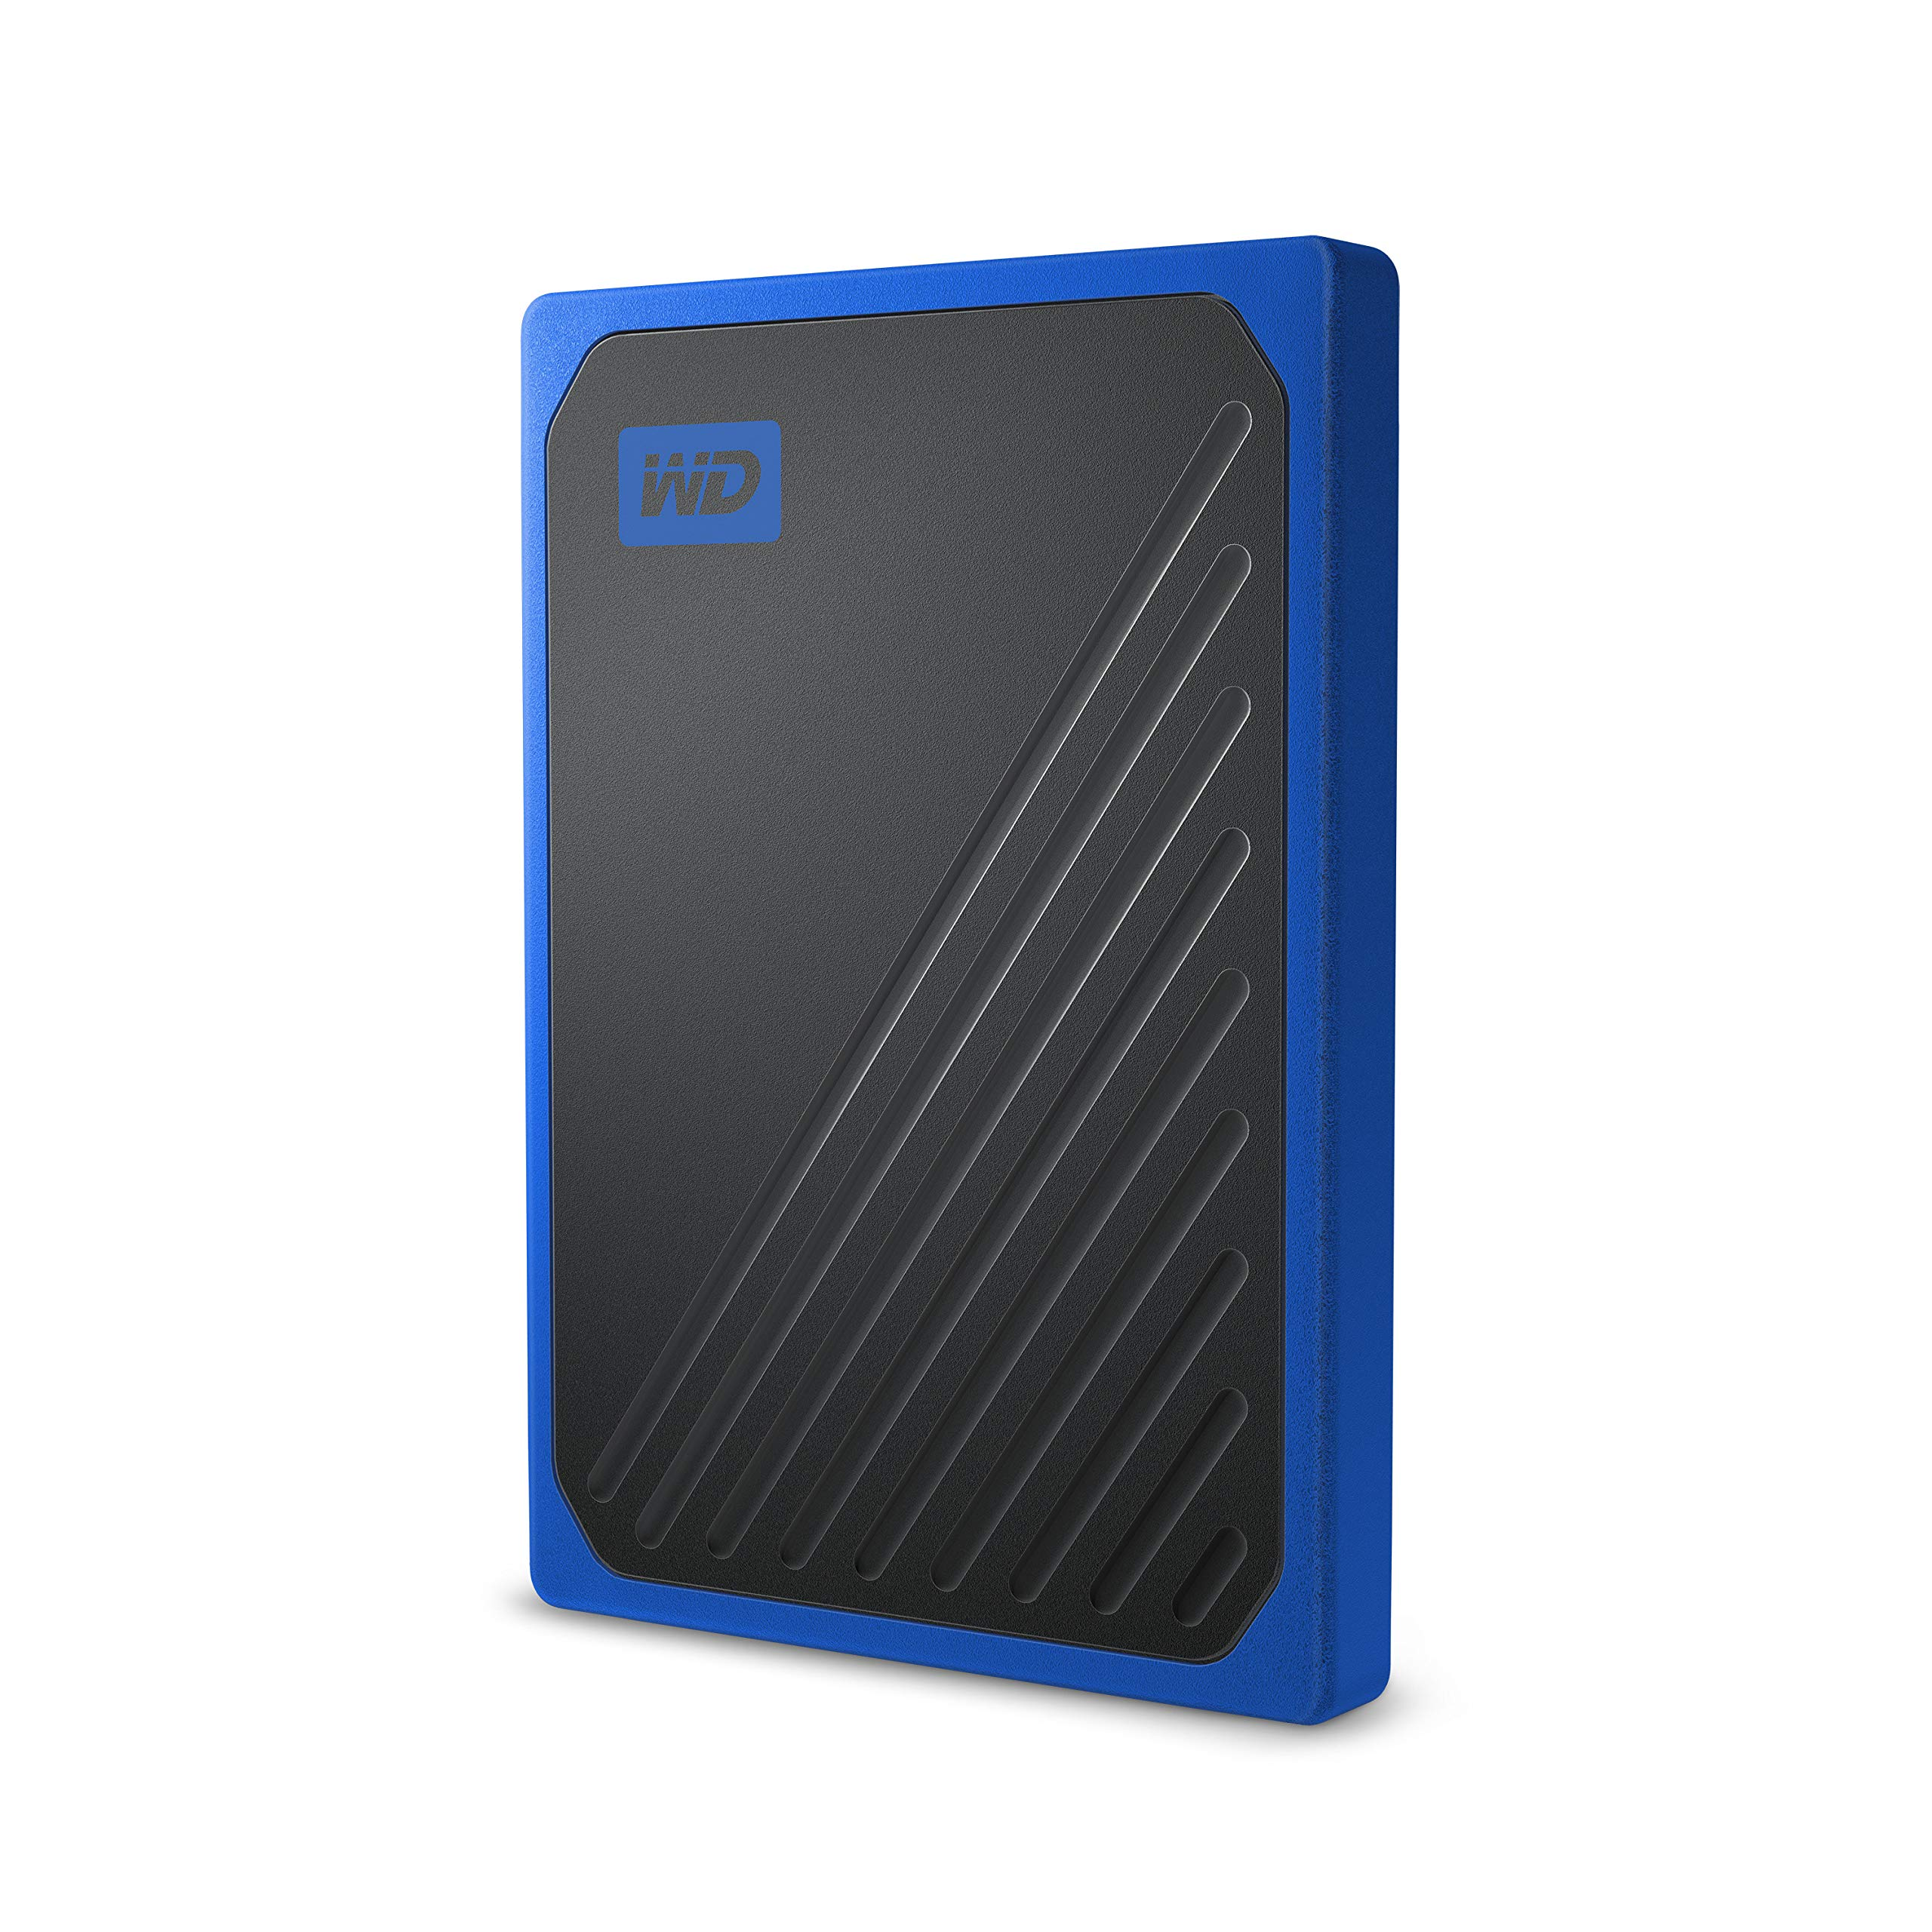 WD 1TB My Passport Go Cobalt SSD Portable External Storage - WDBY9Y0010BBT-WESN (Old model)